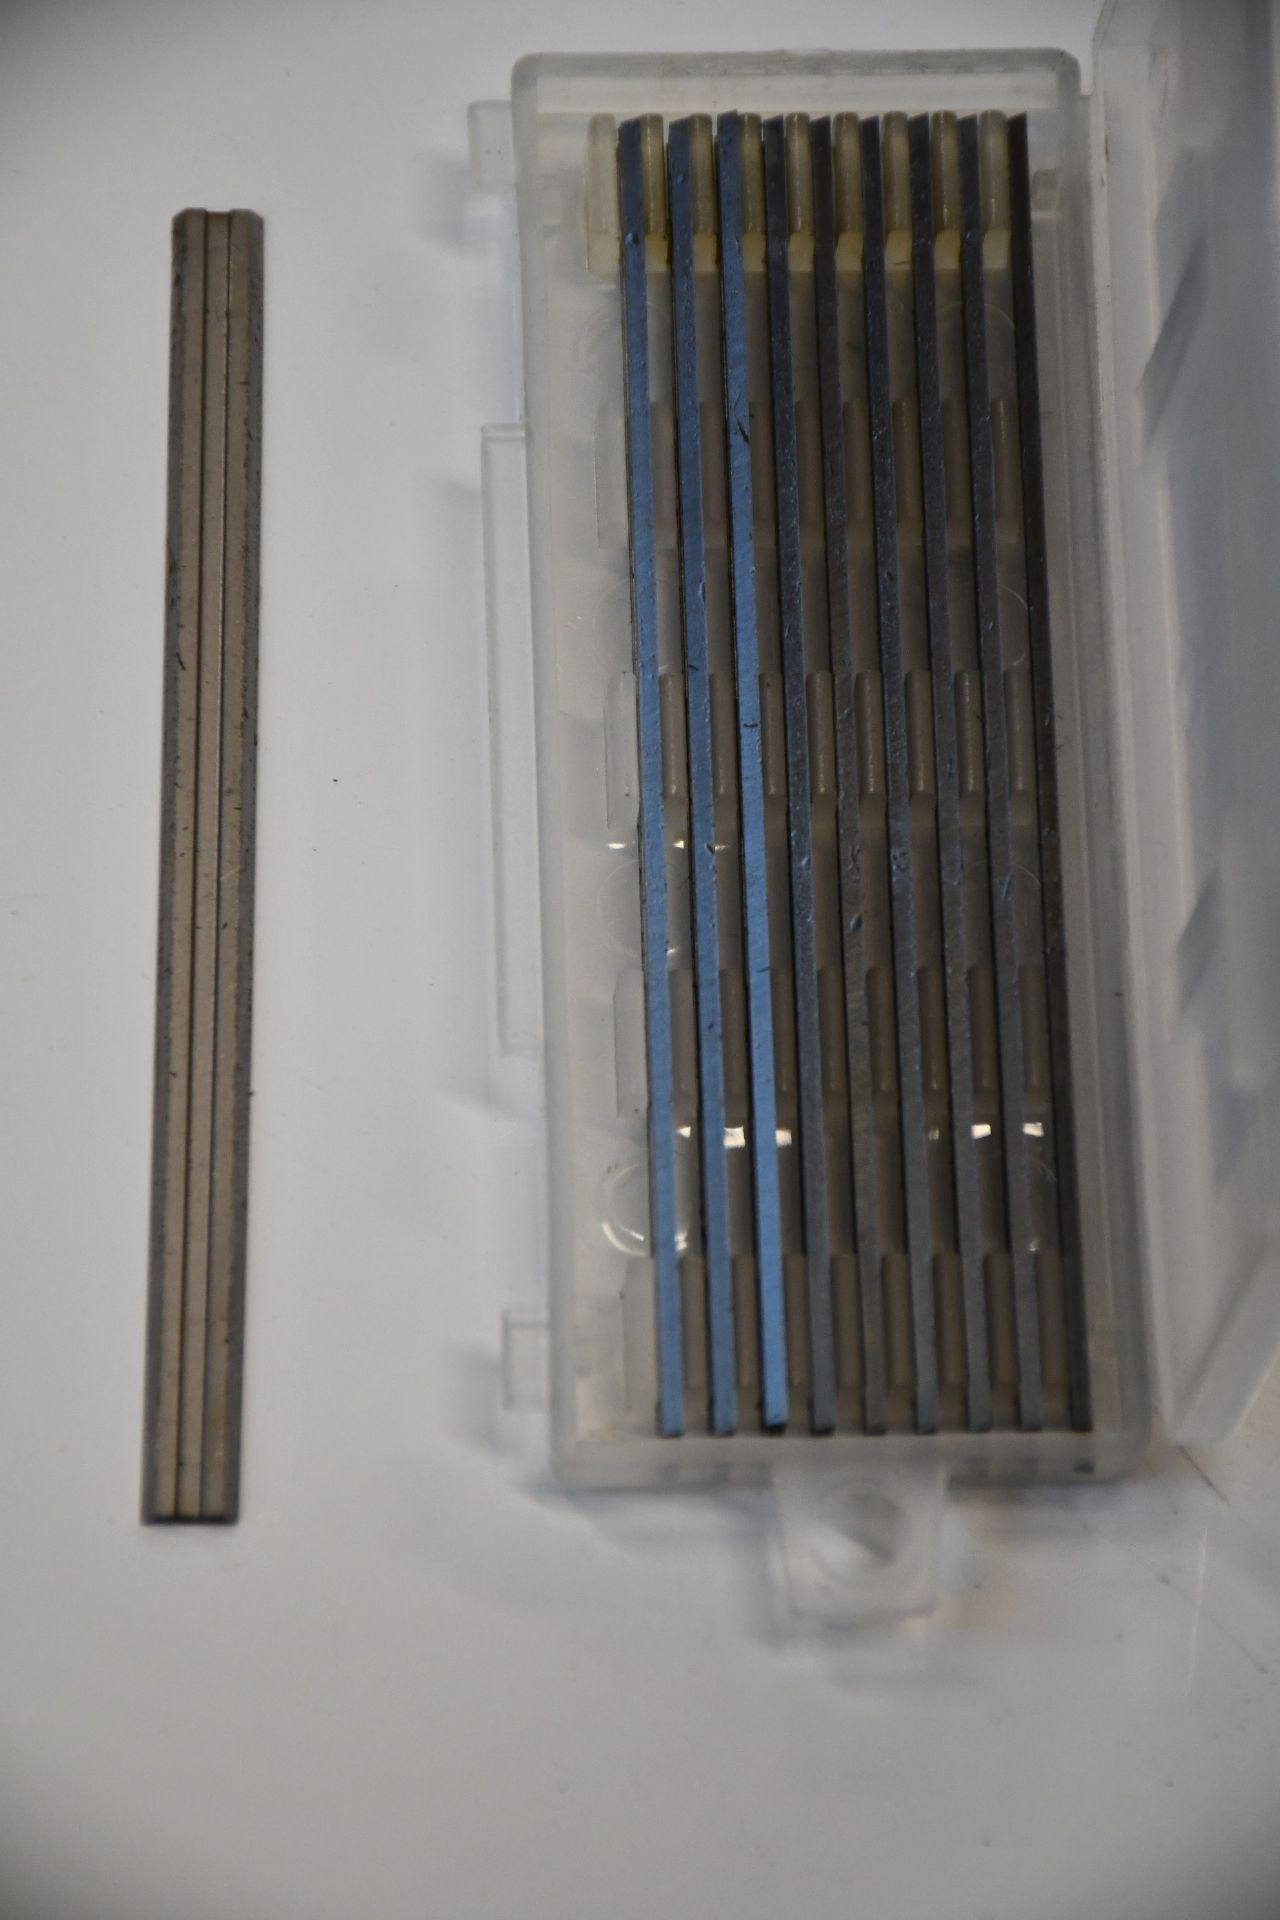 Lot 1309 - A large quantity of as new Wadkin Bursgreen planer blades (Approximately 100 packs of ten).